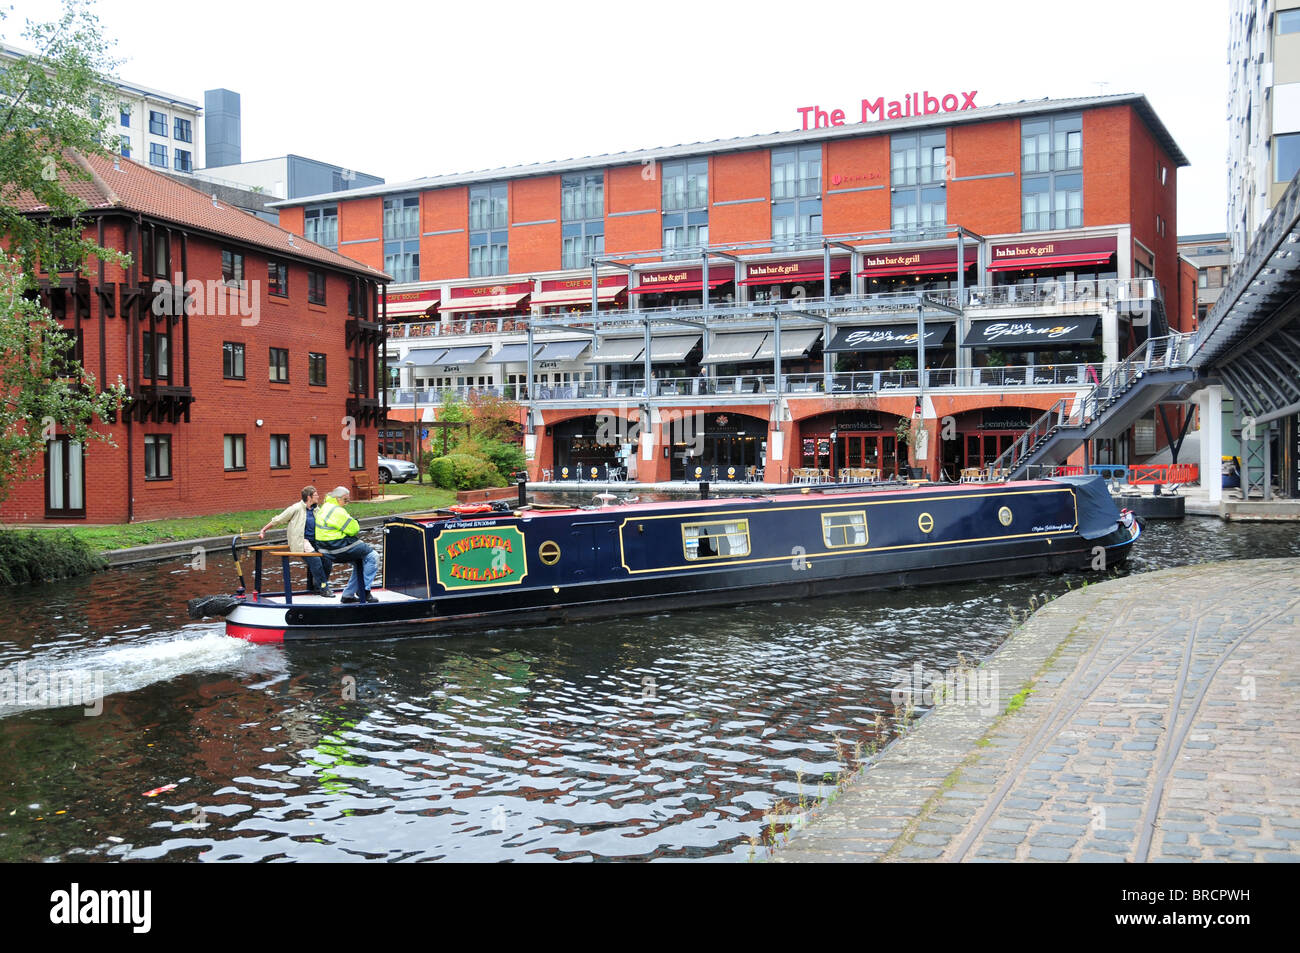 Narrowboat on Birmingham Canal passing to rear of The Mailbox Centre - Stock Image